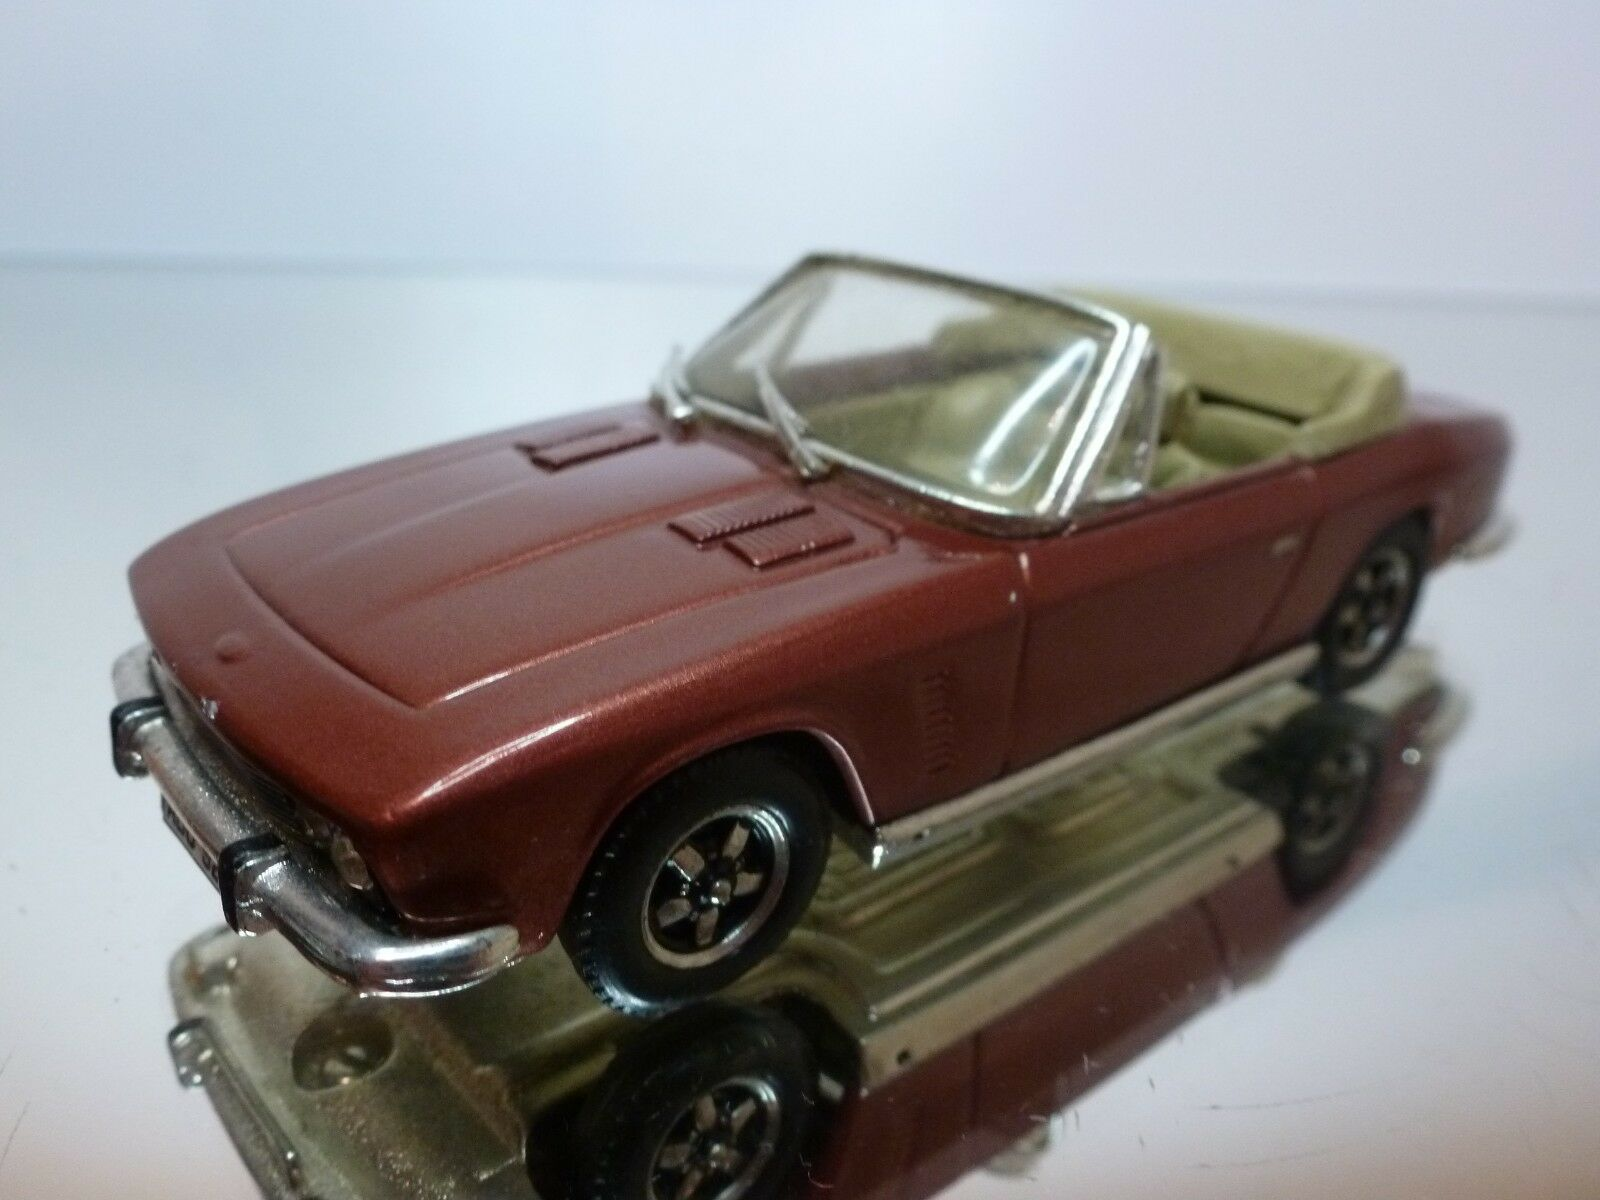 ENCO MODELS 315 JENSEN INTERCEPTOR CONGrünIBLE - RHD - METALLIC 1 43 - GOOD